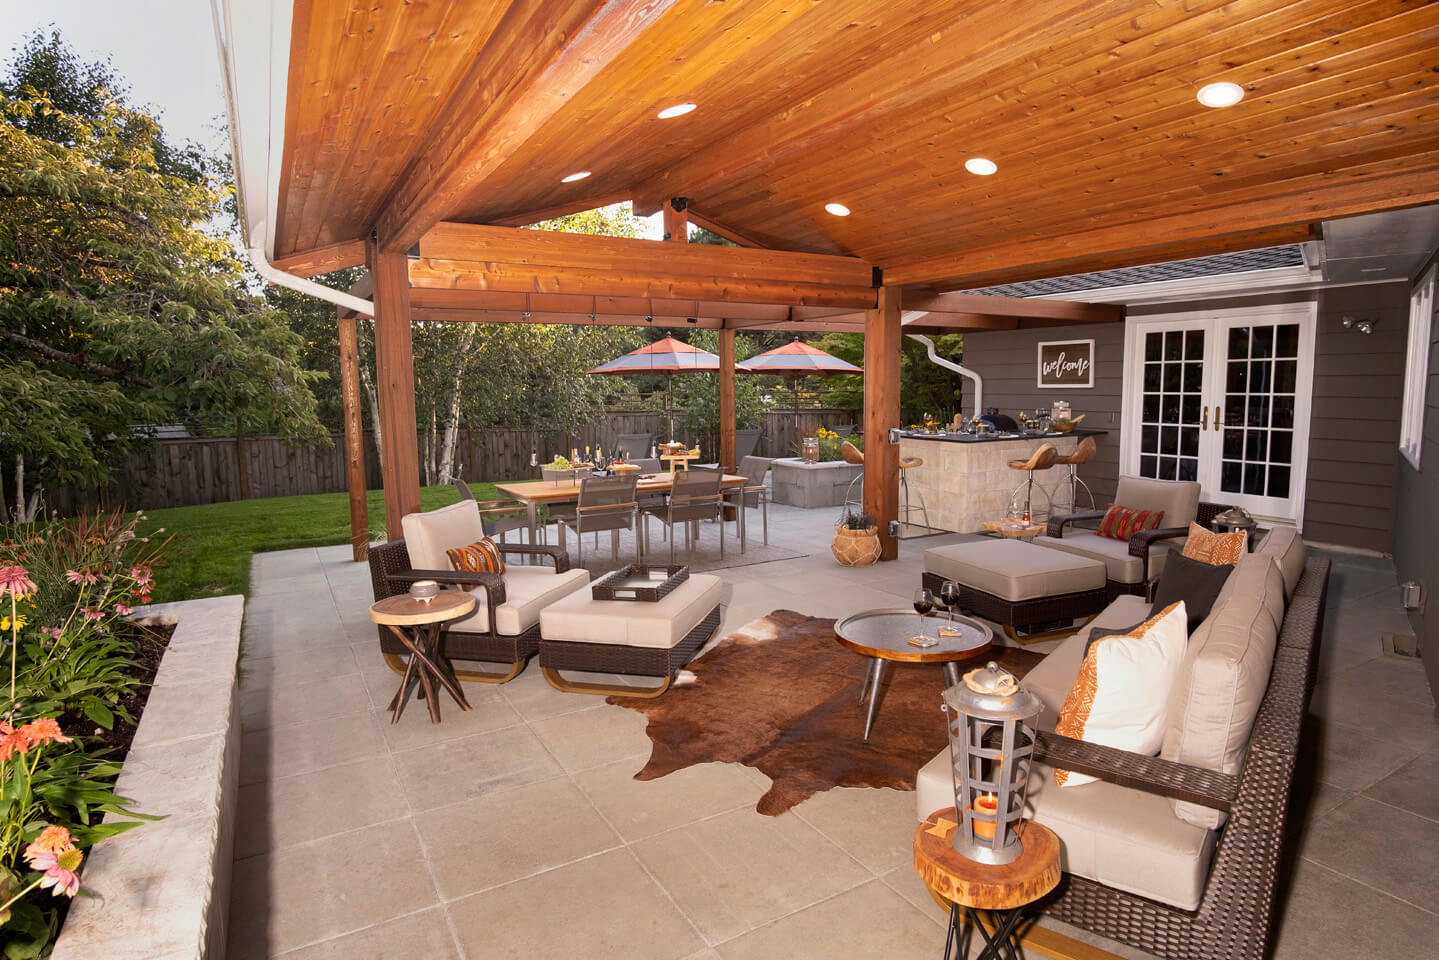 Outdoor Living Room Design Paradise Restored Landscaping